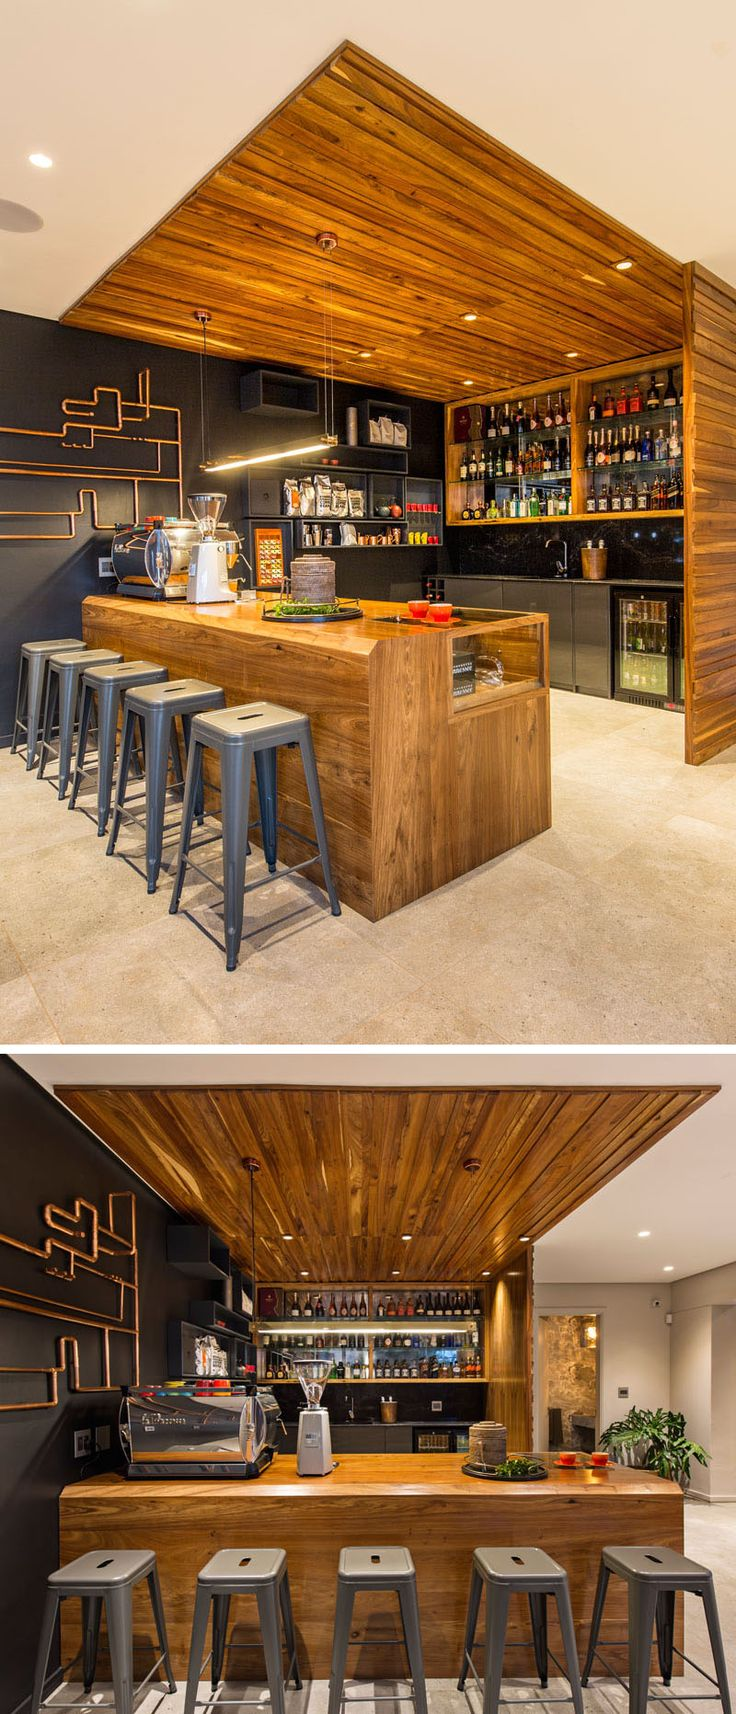 This modern wood bar has everything needed for making high quality coffee and cocktails. Black floating rectangular boxes blend in to the dark accent wall and provide additional storage.